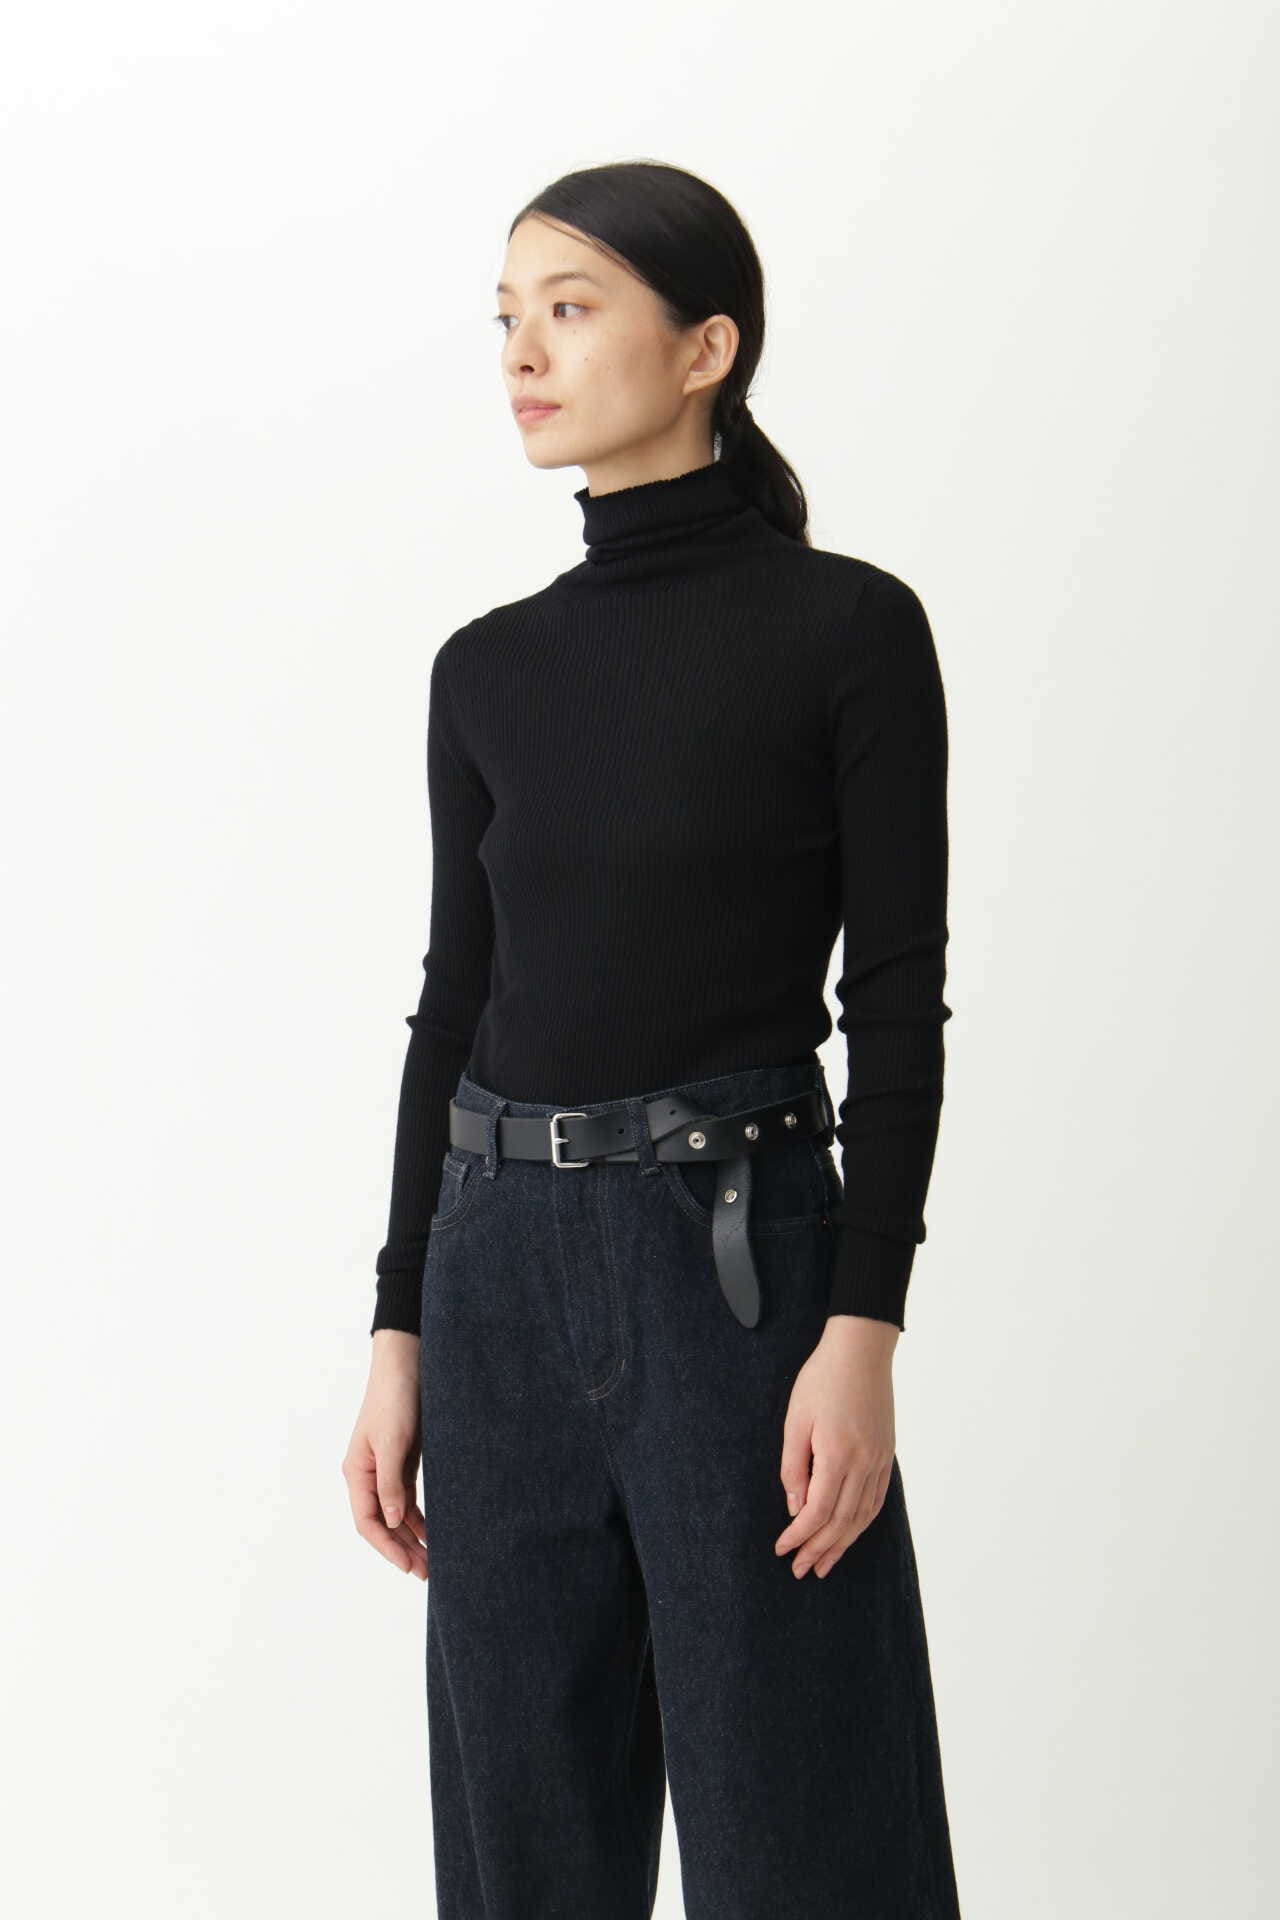 FINE RIB TURTLENECK6